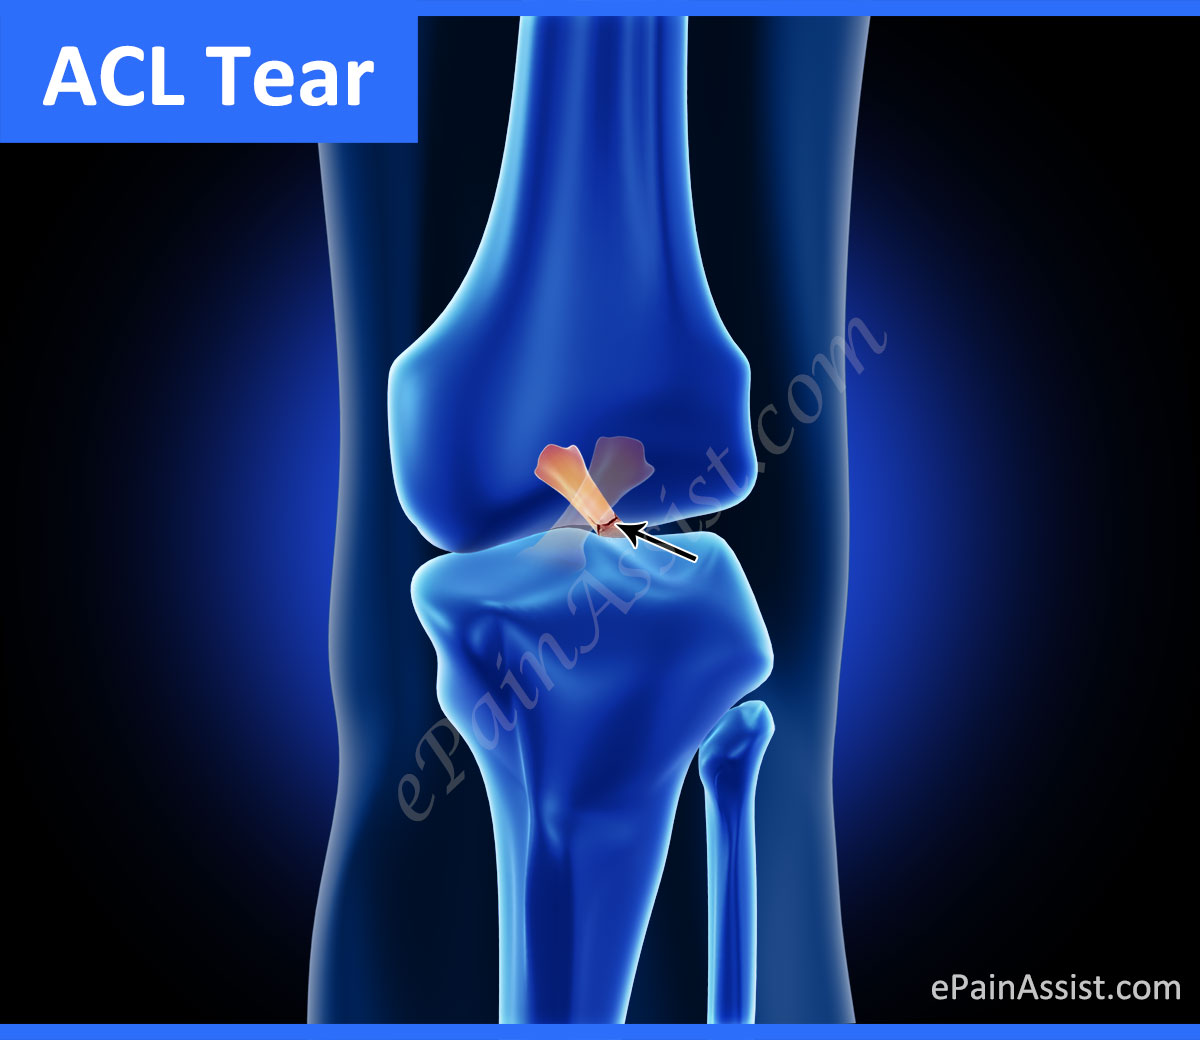 a look at the anterior cruciate ligament injuries in sports Background the anterior cruciate ligament (acl) originates from the tibial plateau just medial and anterior to the tibial eminence the acl tracts from the tibia superiorly, laterally, and posteriorly to its insertion on the posterior aspect of the medial wall of the lateral femoral condyle.